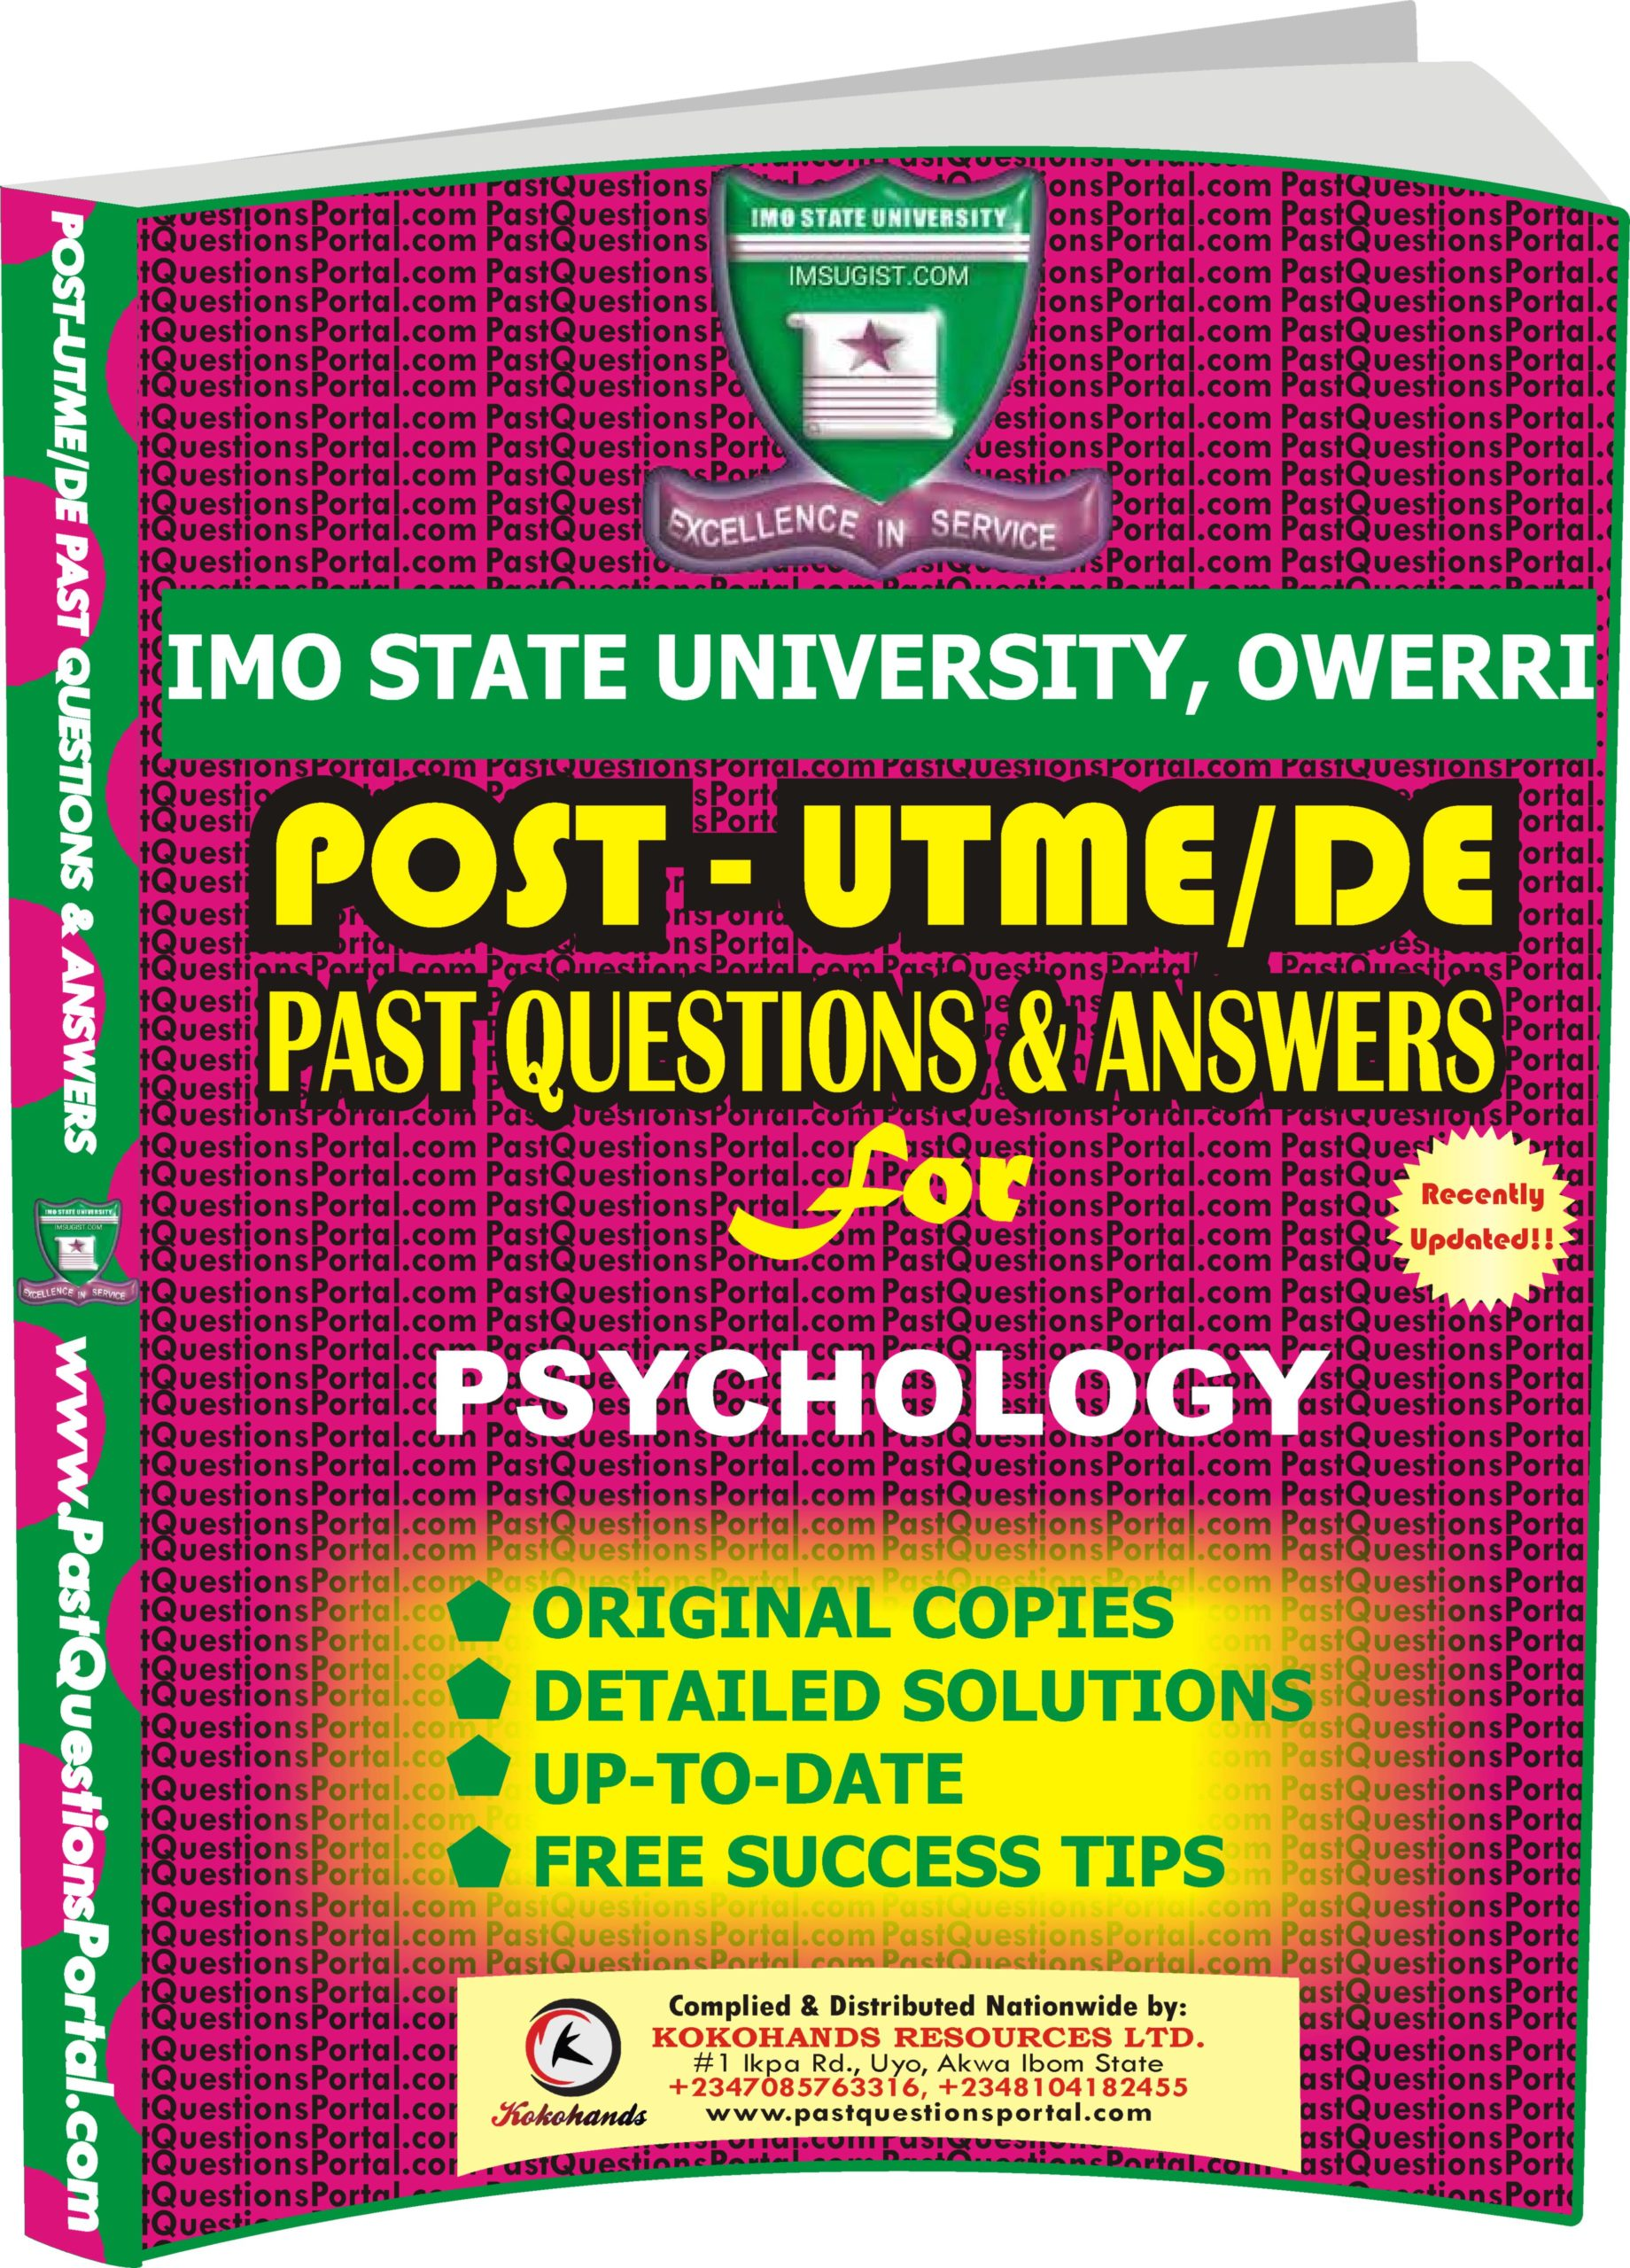 IMSU Post UTME Past Questions for PSYCHOLOGY